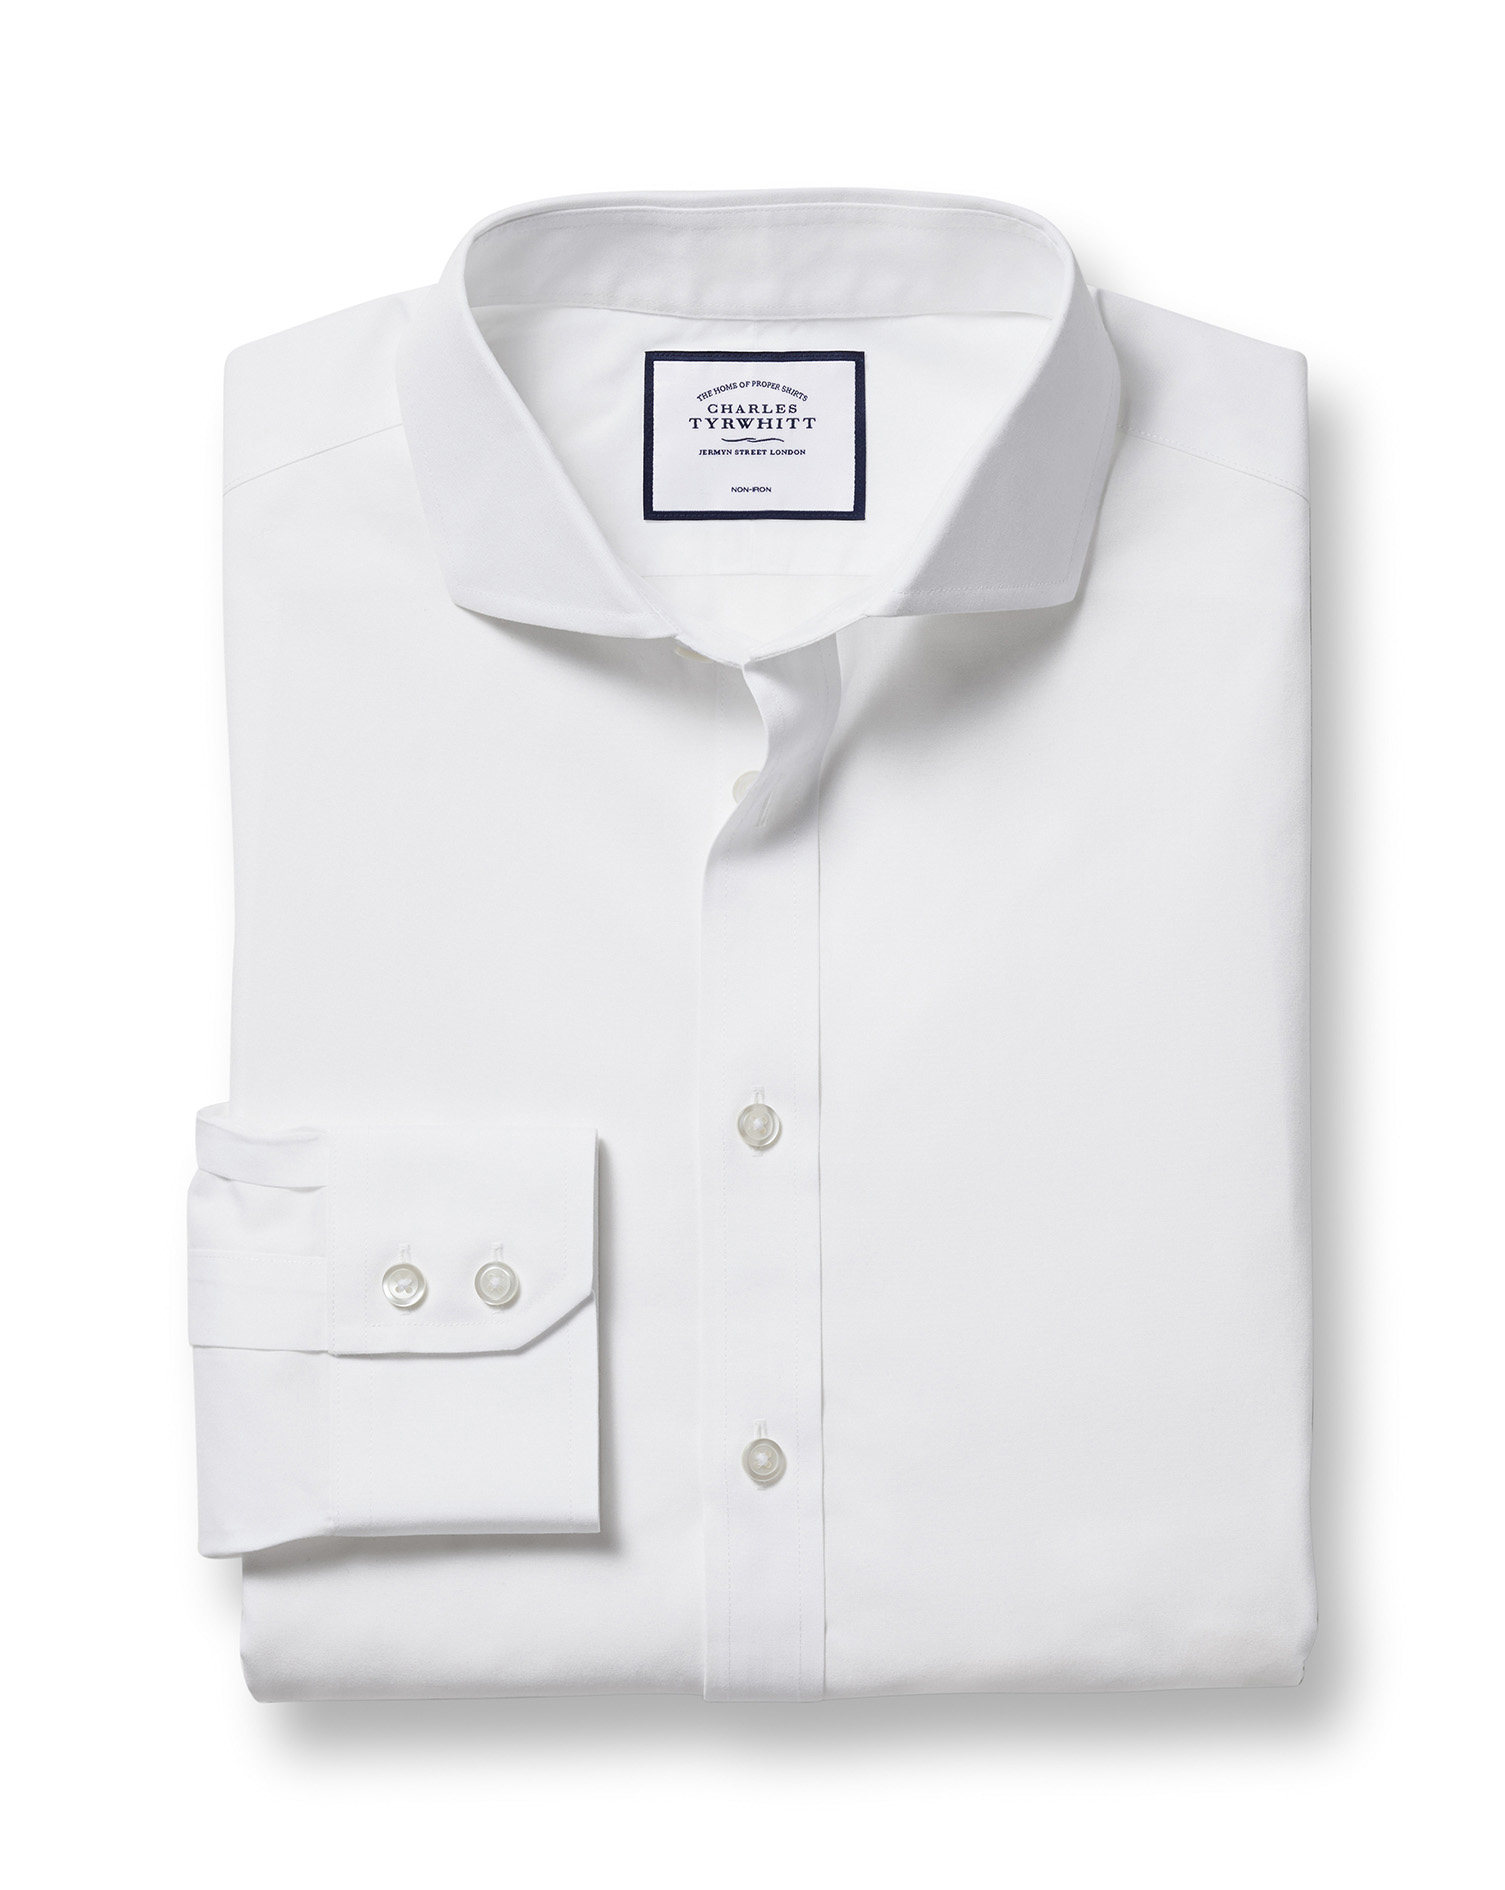 Extra Slim Fit Cutaway Non-Iron Poplin White Cotton Formal Shirt Single Cuff Size 16/33 by Charles Tyrwhitt from Charles Tyrwhitt